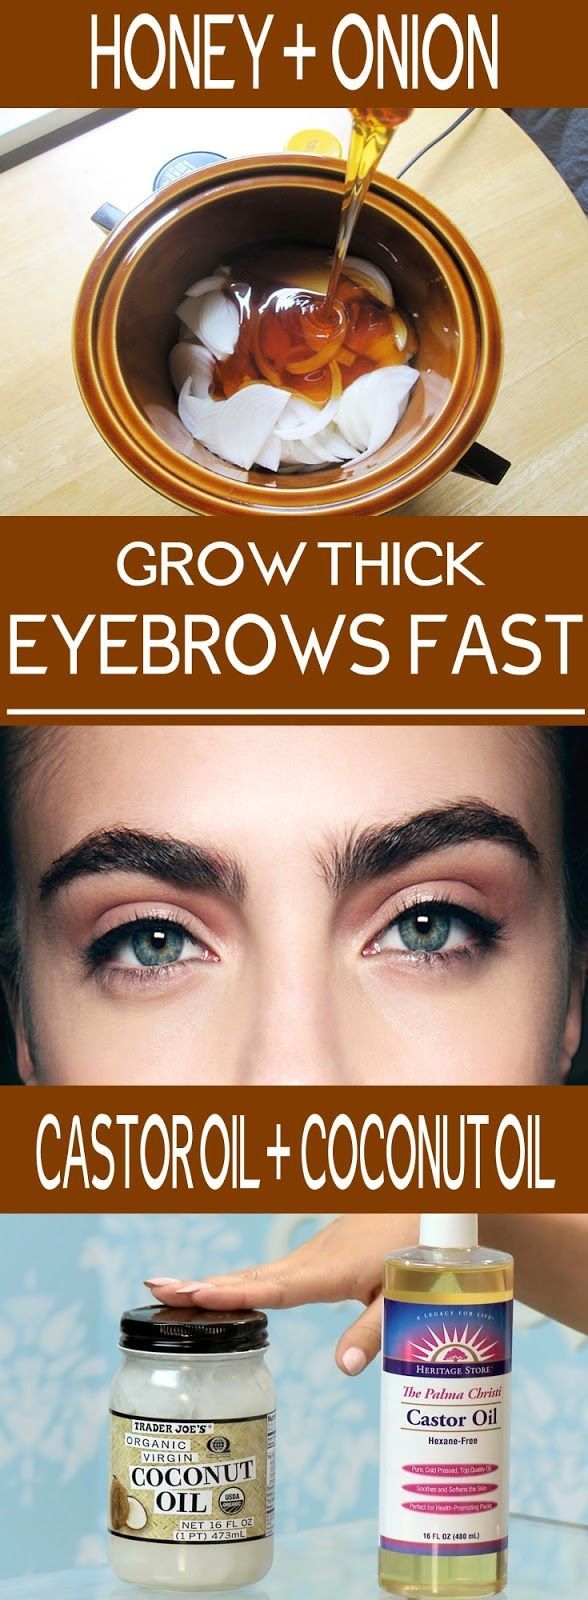 25+ best ideas about How to grow eyelashes on Pinterest | Grow ...